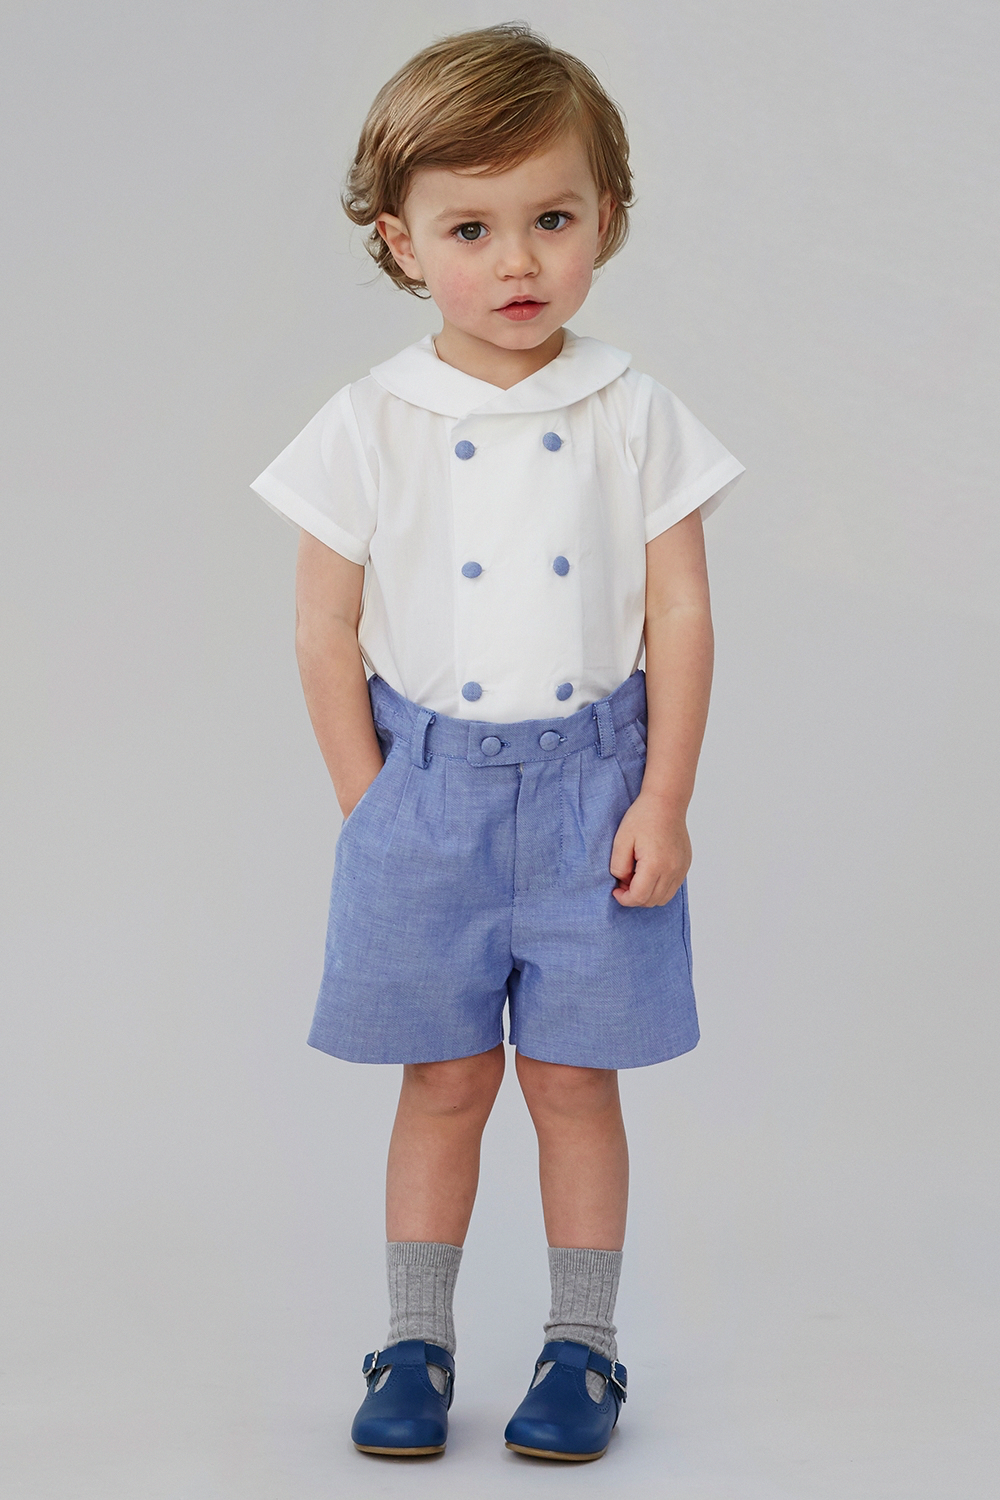 92daff2e6673d Cute Trendy Toddler Boy Clothes | Best Baby Girl Dresses | Latest Designs  Of Dresses For Kids 20190209